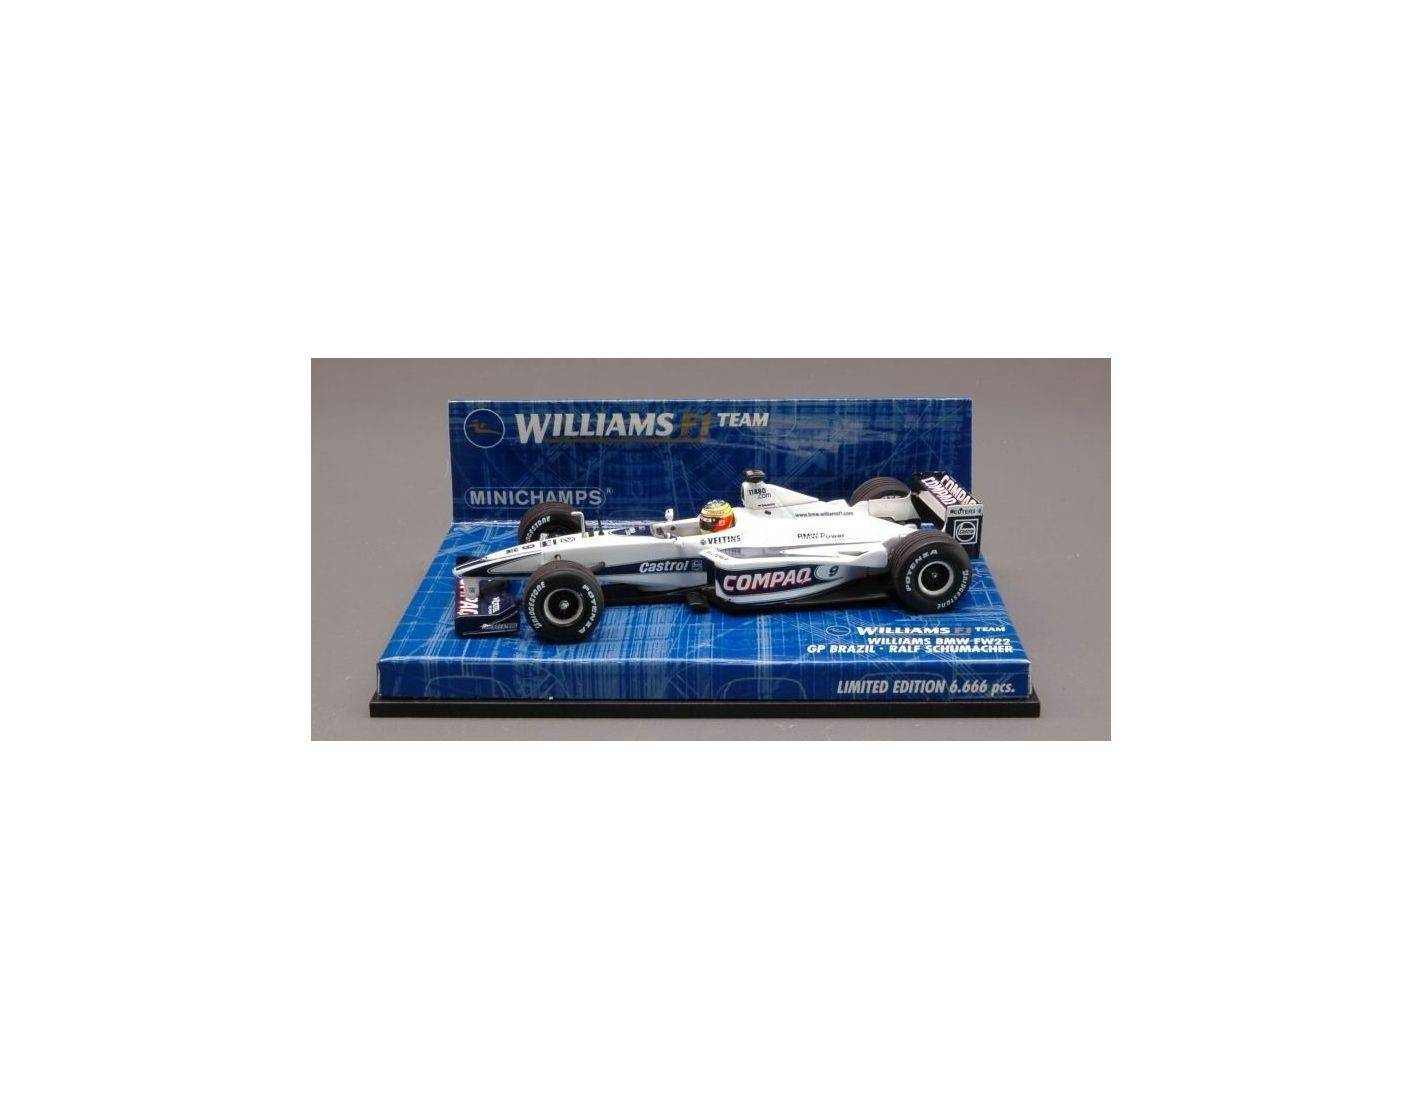 Minichamps PM430000029 WILLIAMS R.SCHUMACHER'00 BRAZIL 1:43 Modellino